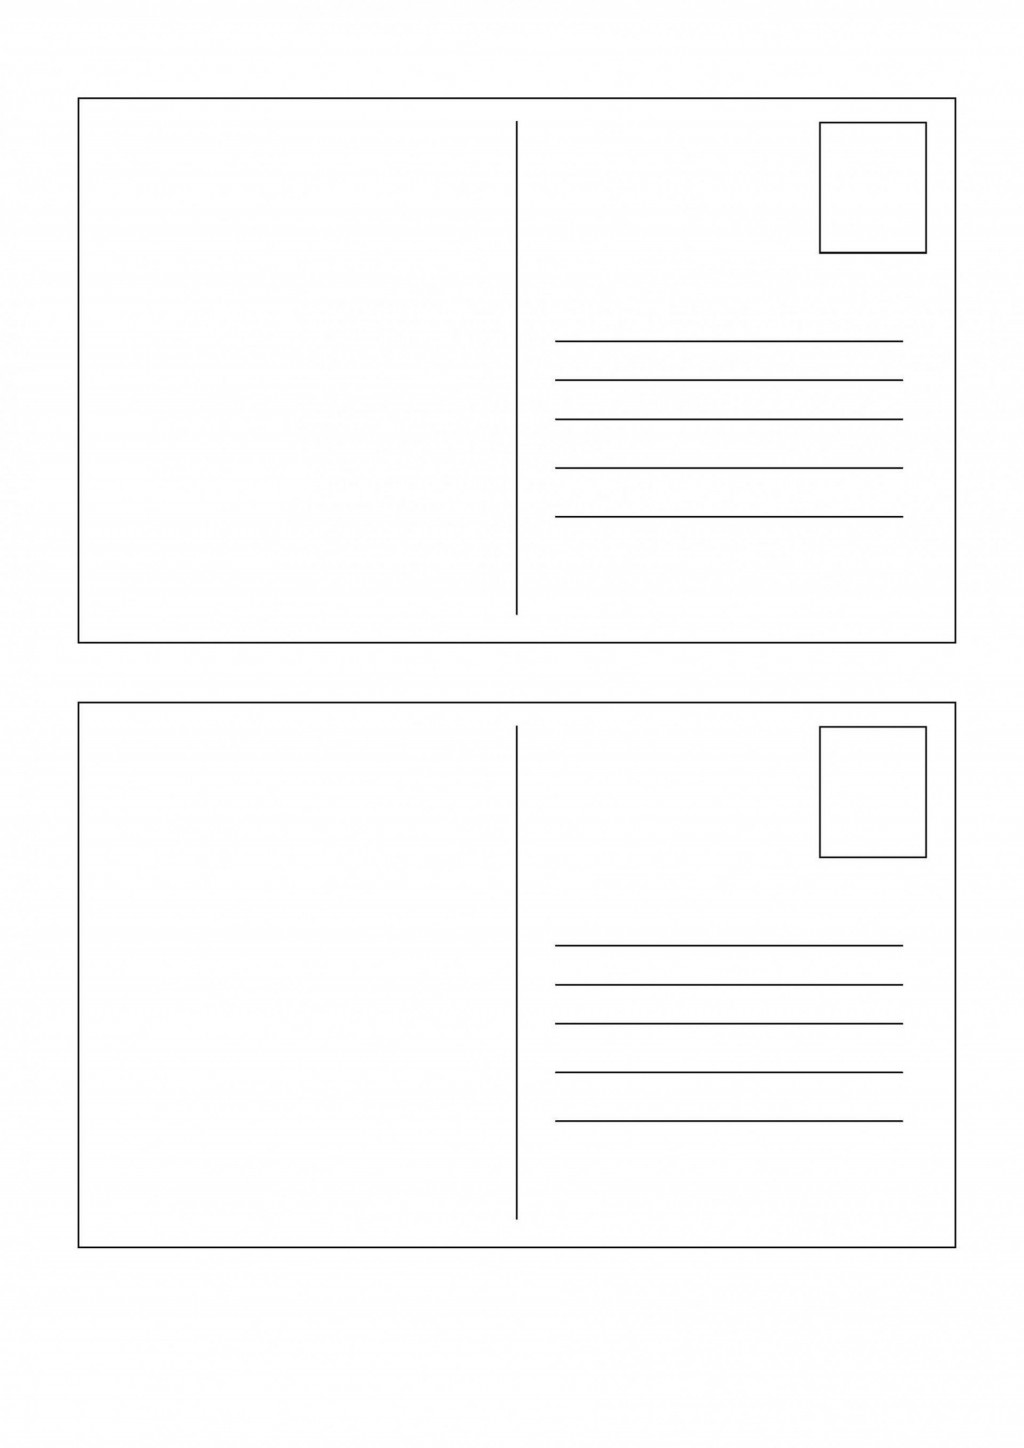 004 Dreaded Rsvp Postcard Template For Word Example Large